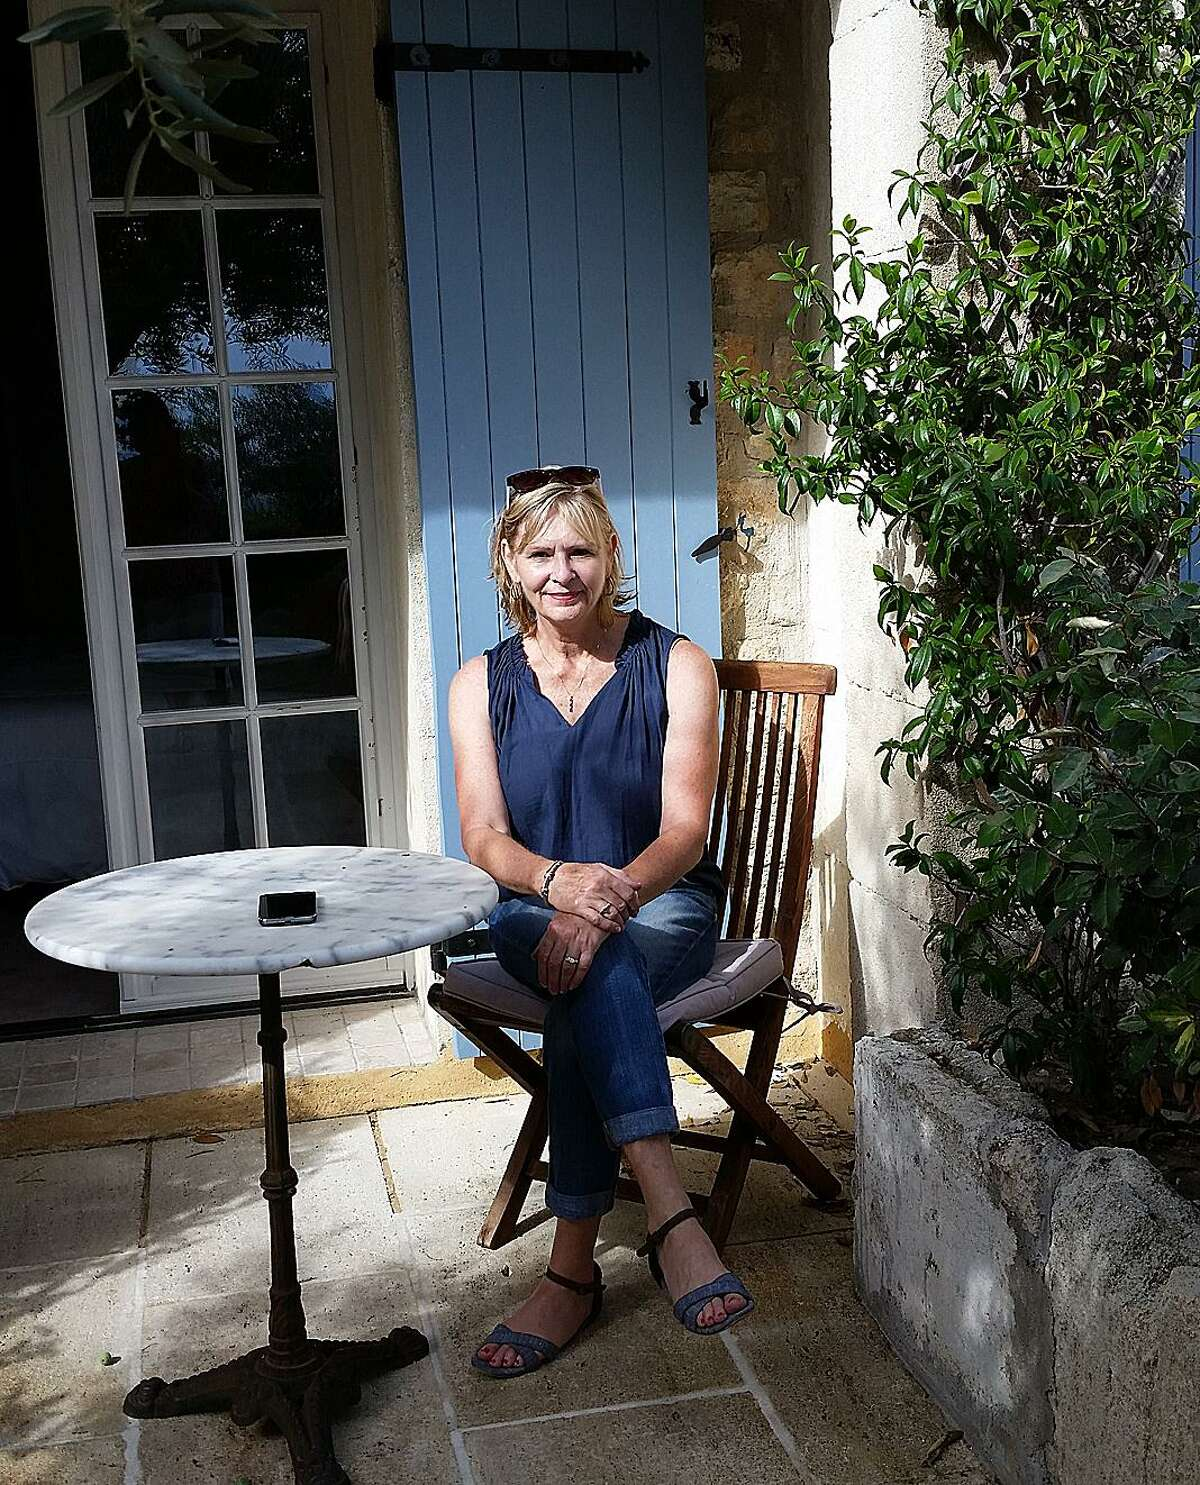 Dee Poquette, owner and founder of Jackdaw Brocante Cuisine Tours in New Fairfield, Conn., relaxes in Les Baux, France.